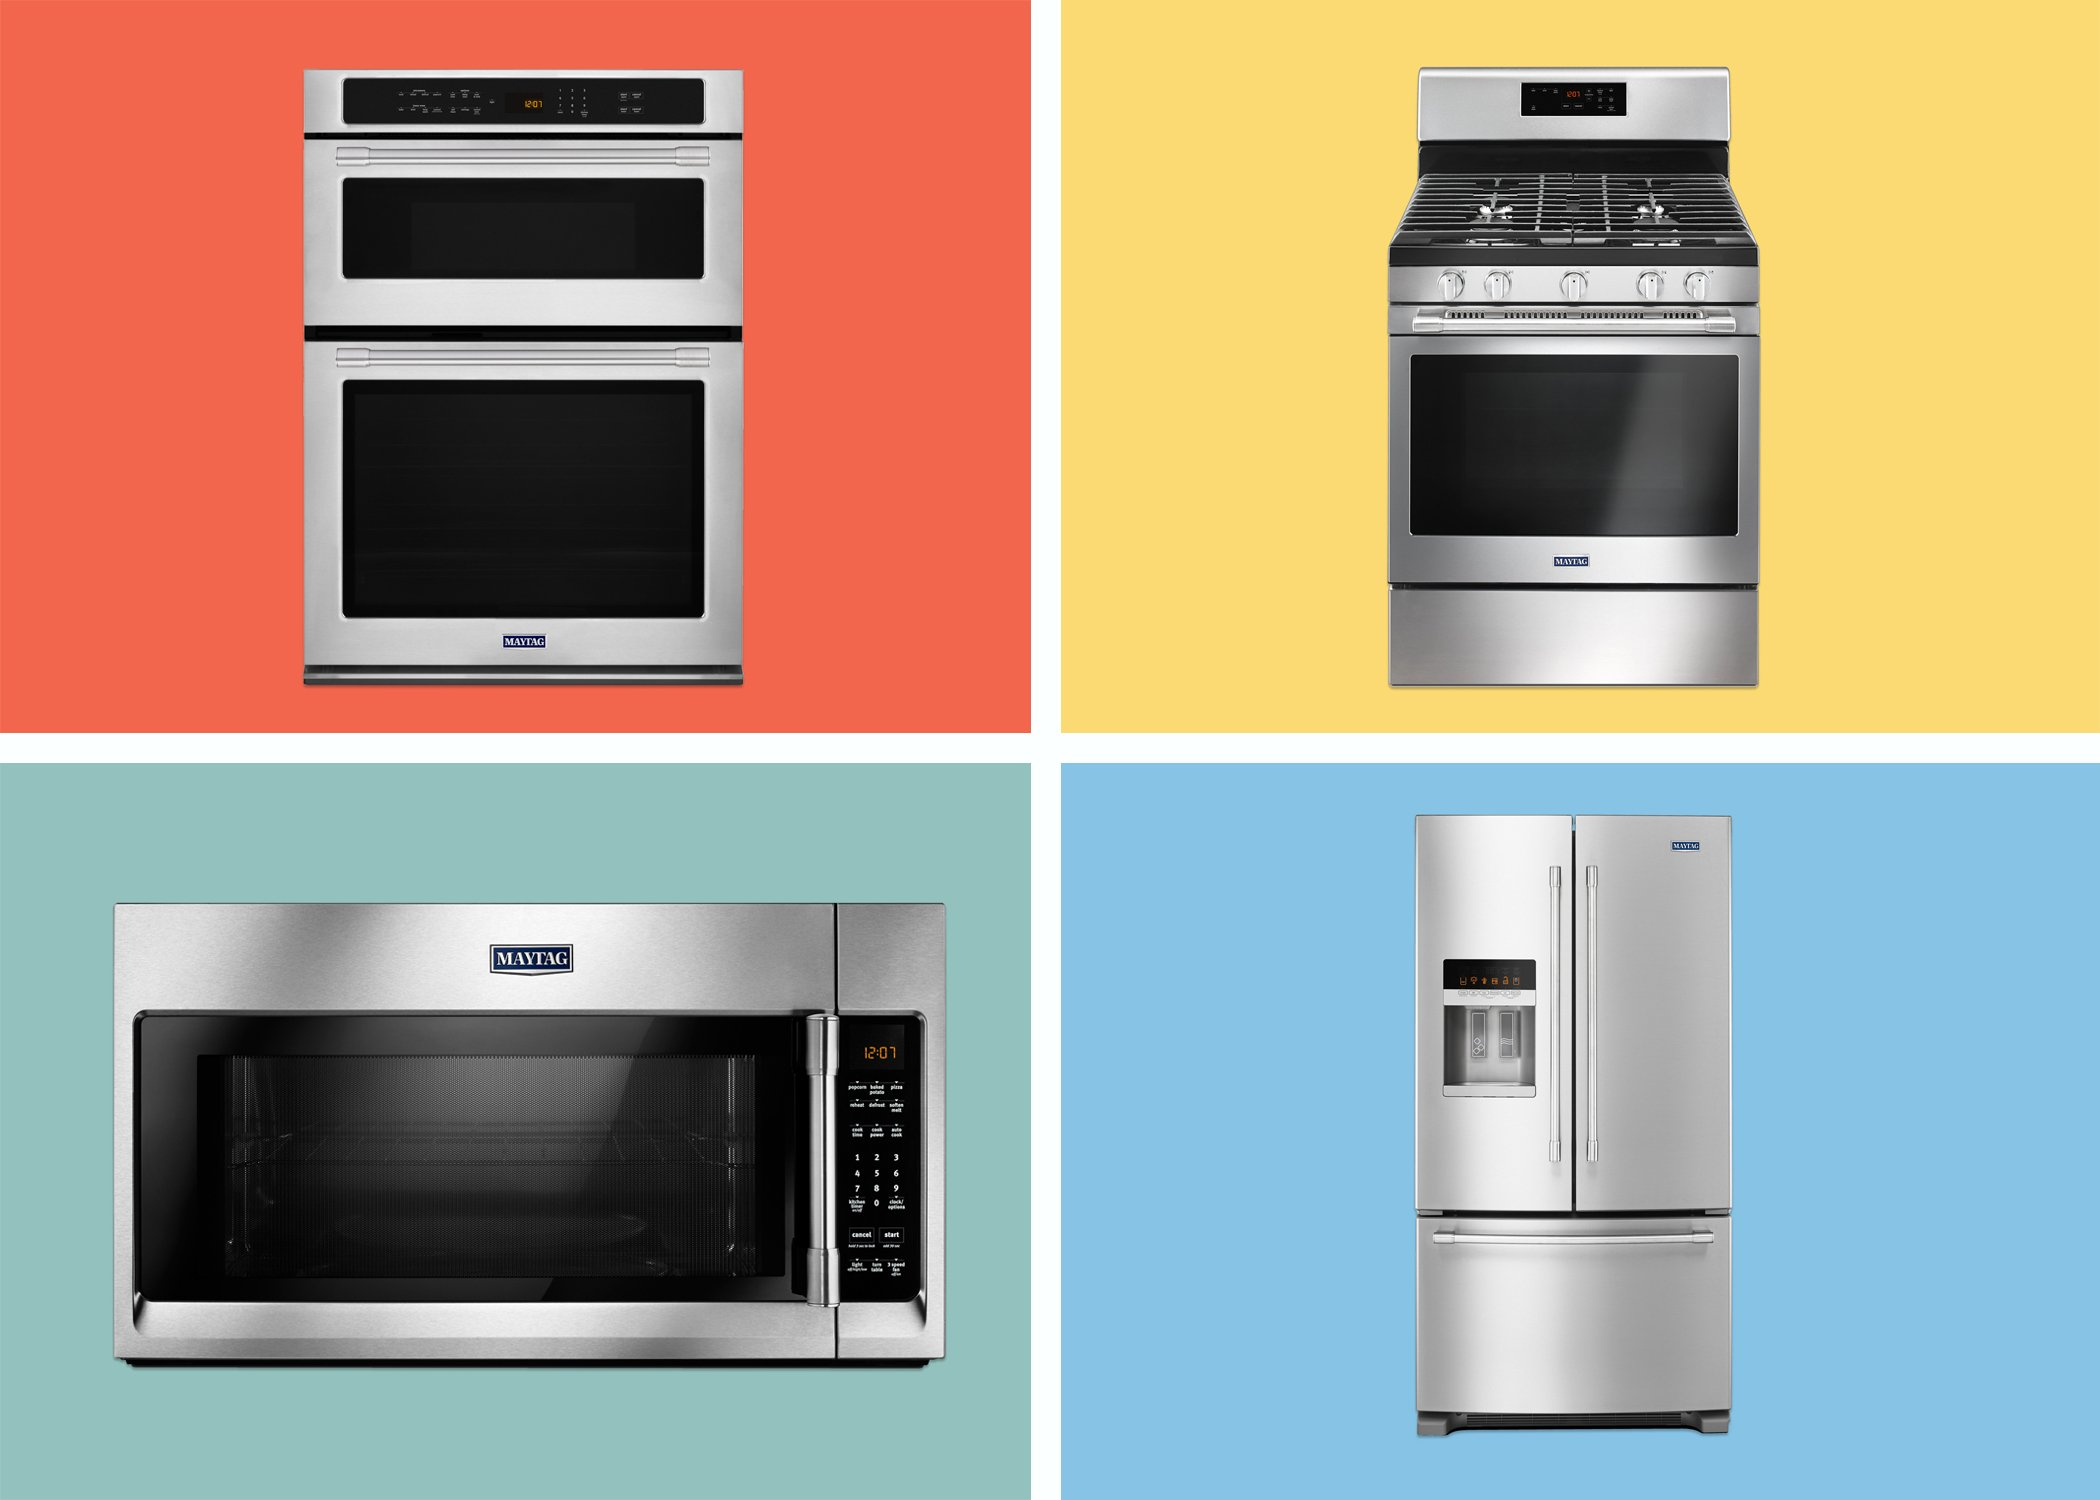 170503 Maytag Appliances